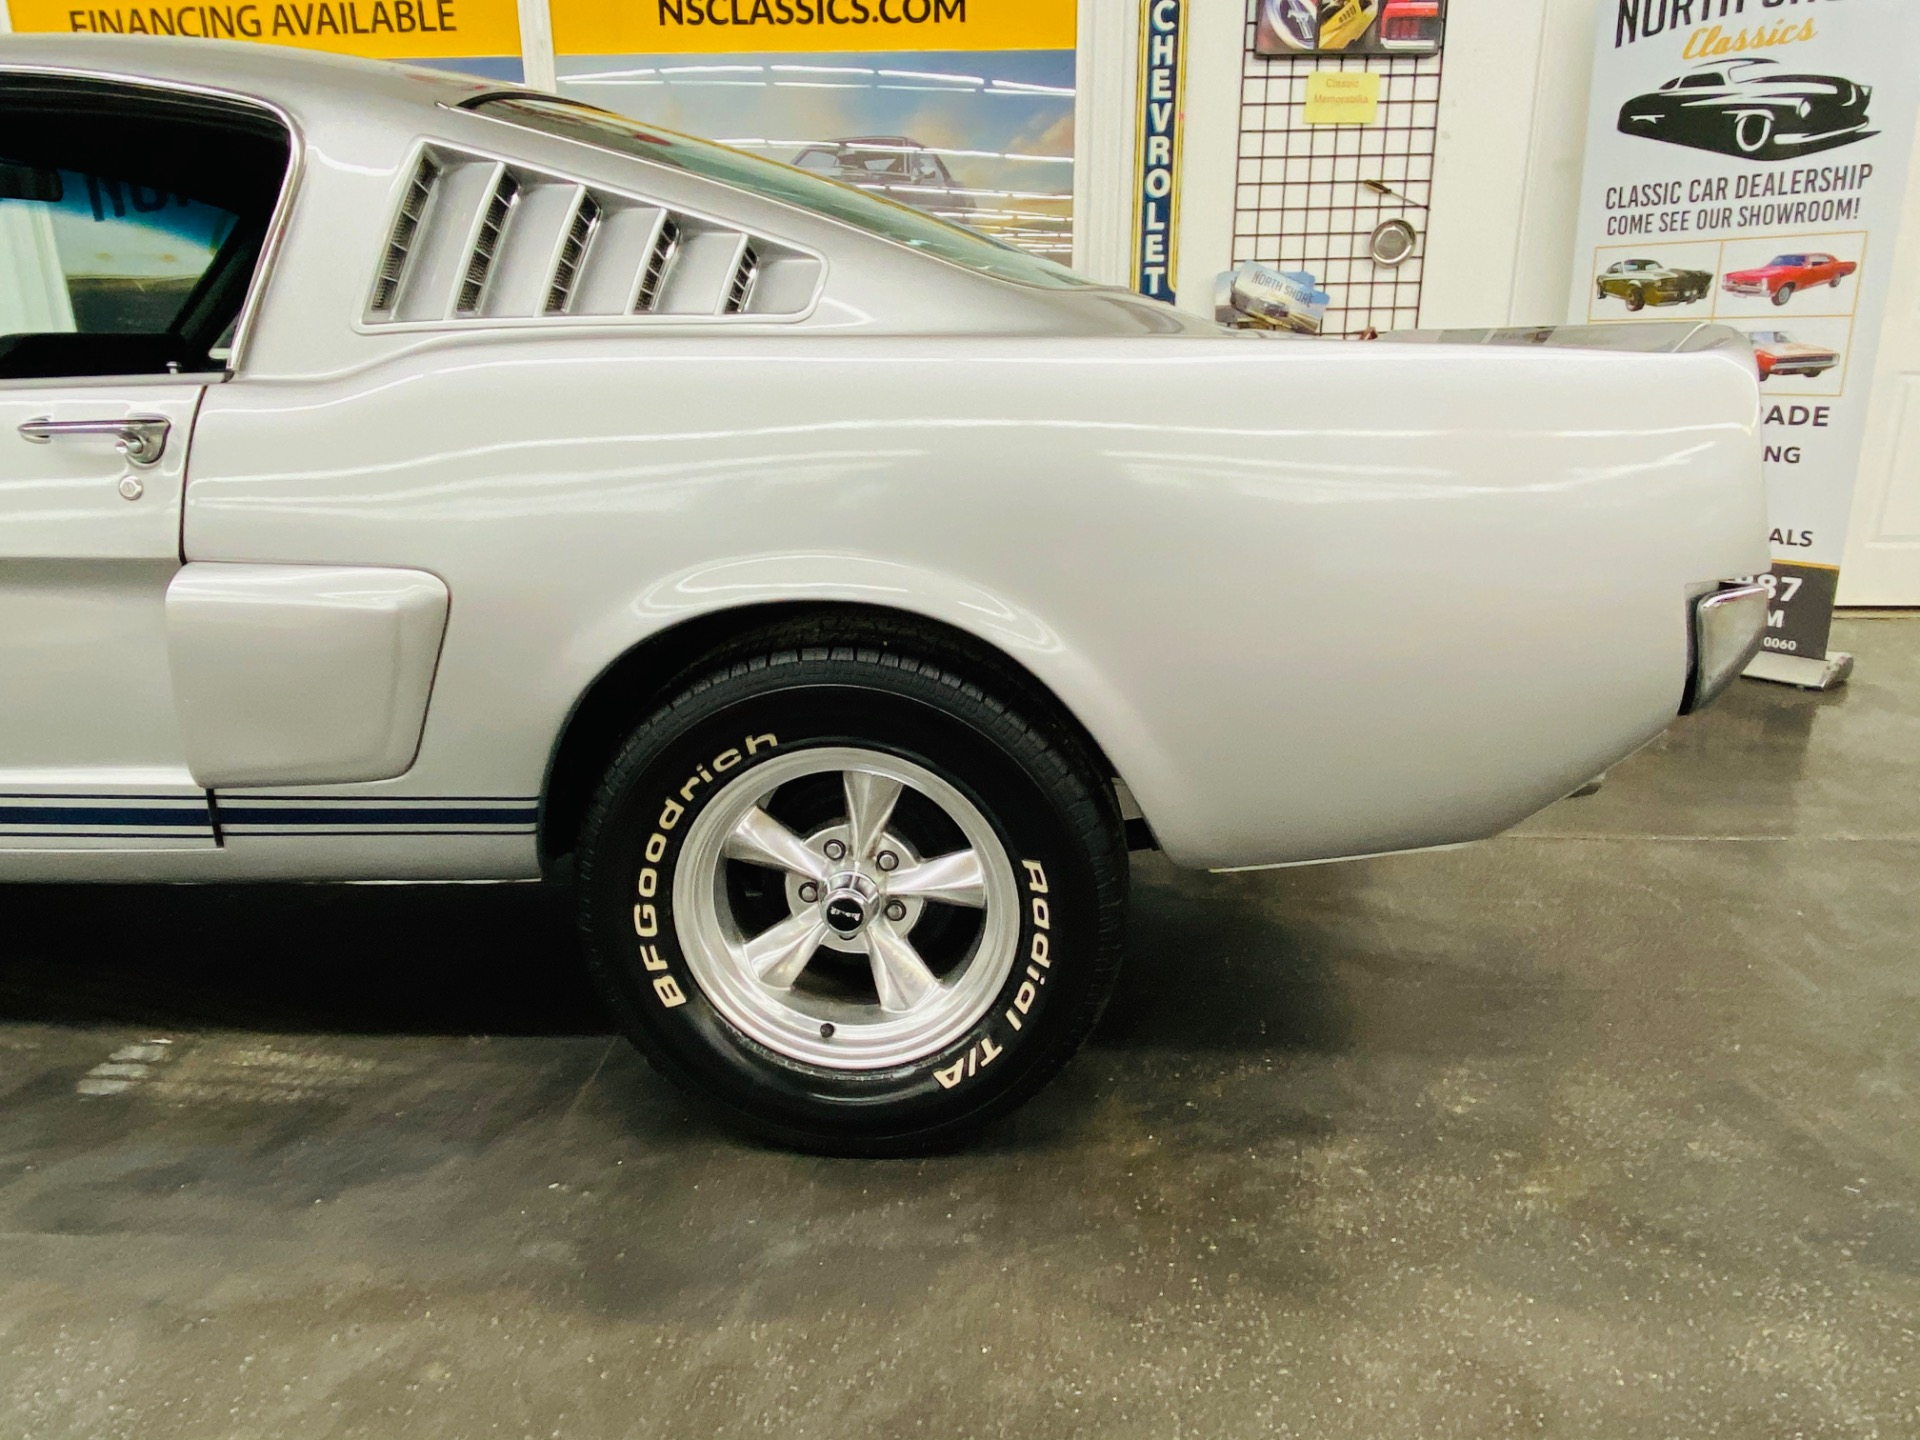 Used 1965 Ford Mustang - FASTBACK - 302 ENGINE - SOLID FLOORS | Mundelein, IL